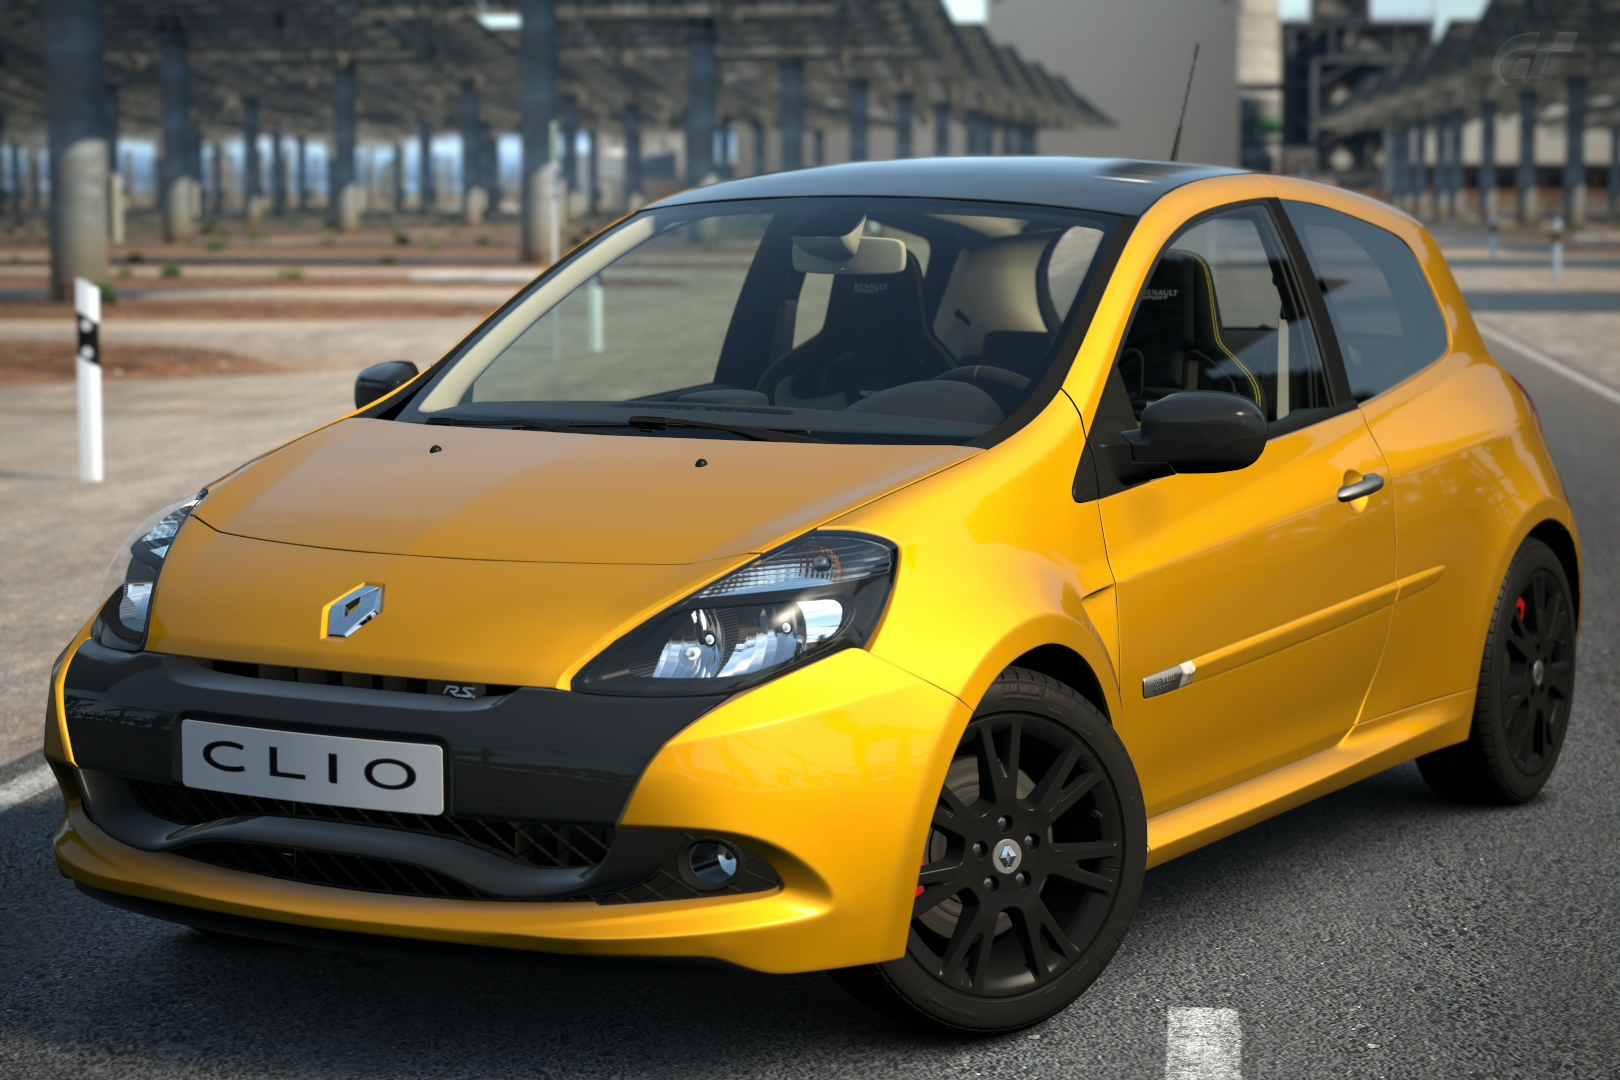 renault sport clio r s 39 11 gran turismo wiki fandom powered by wikia. Black Bedroom Furniture Sets. Home Design Ideas